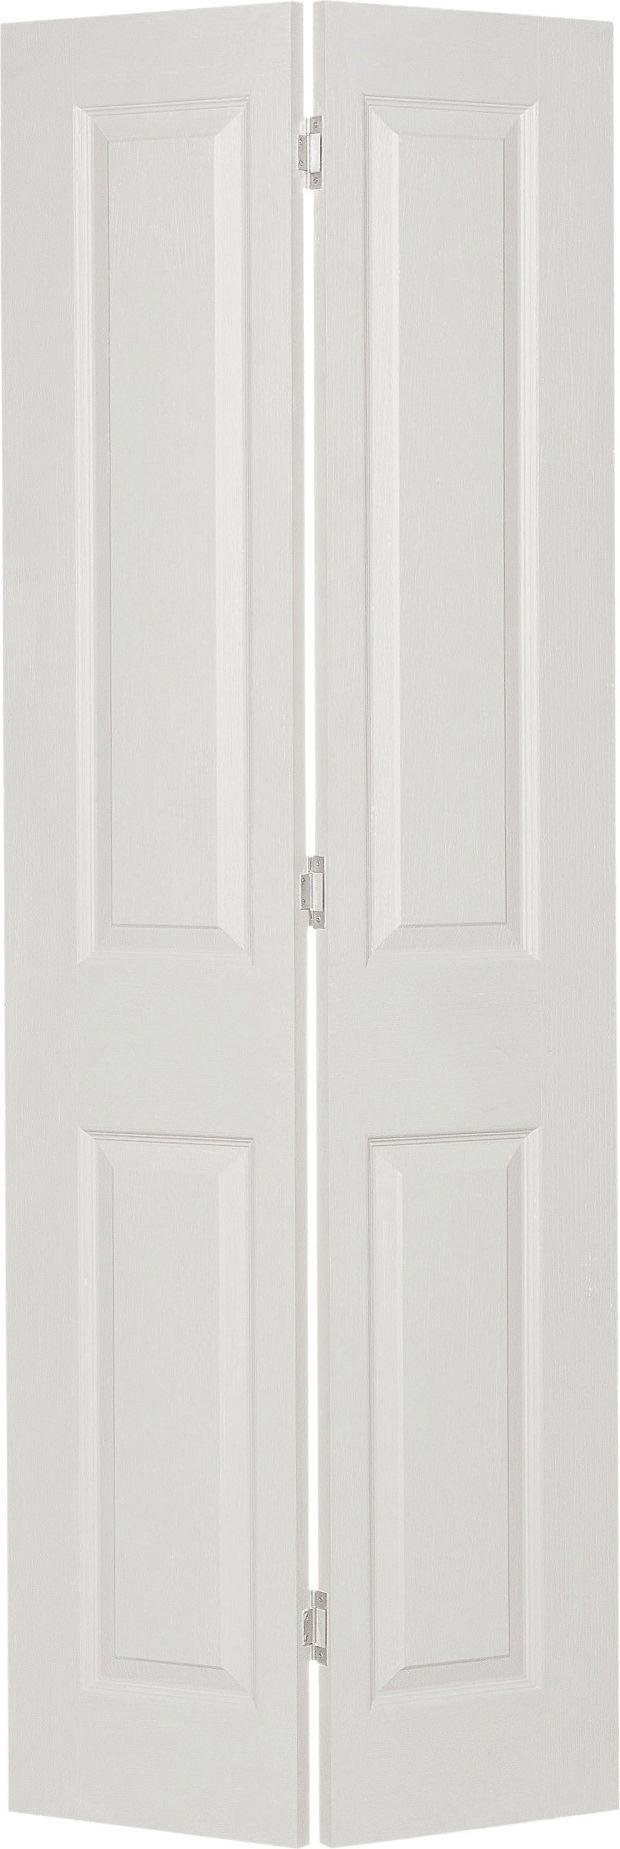 jeld-wen-4-panel-bi-fold-interior-door-1981-x-610mm